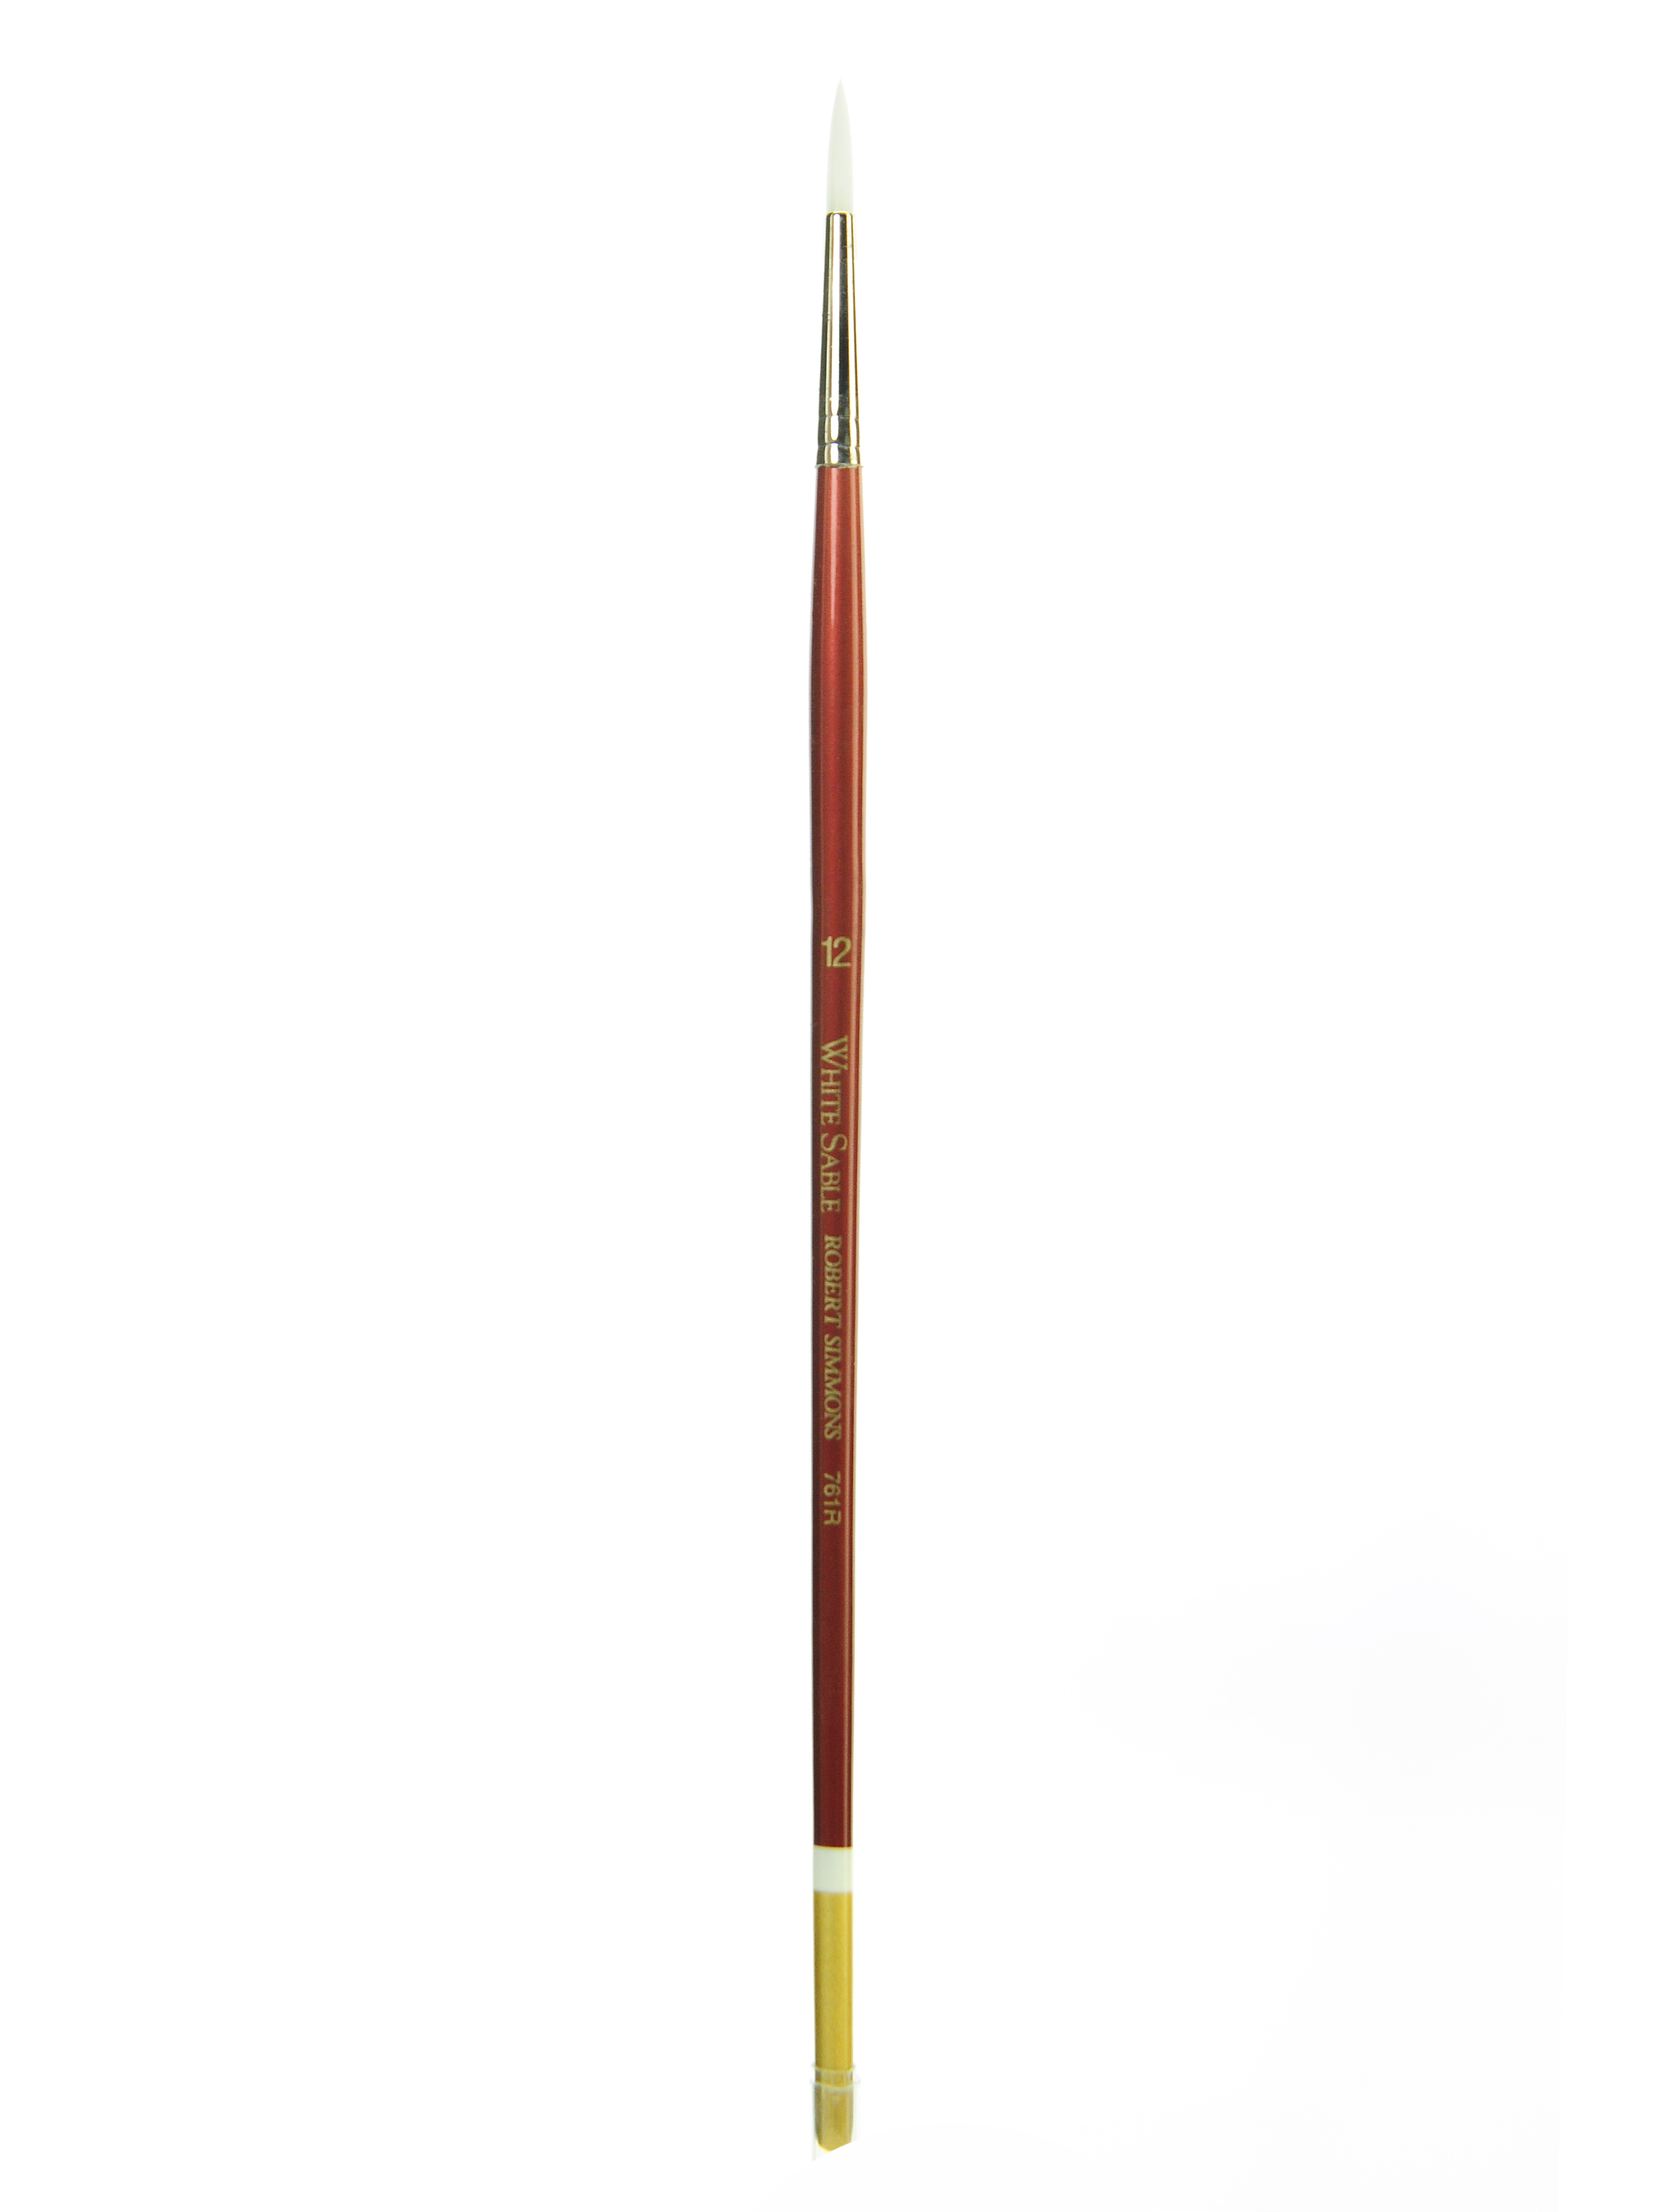 Robert Simmons White Sable Long Handle Paint Brush 761R, Size 12, Round Bristle, Sable Hair, Brown